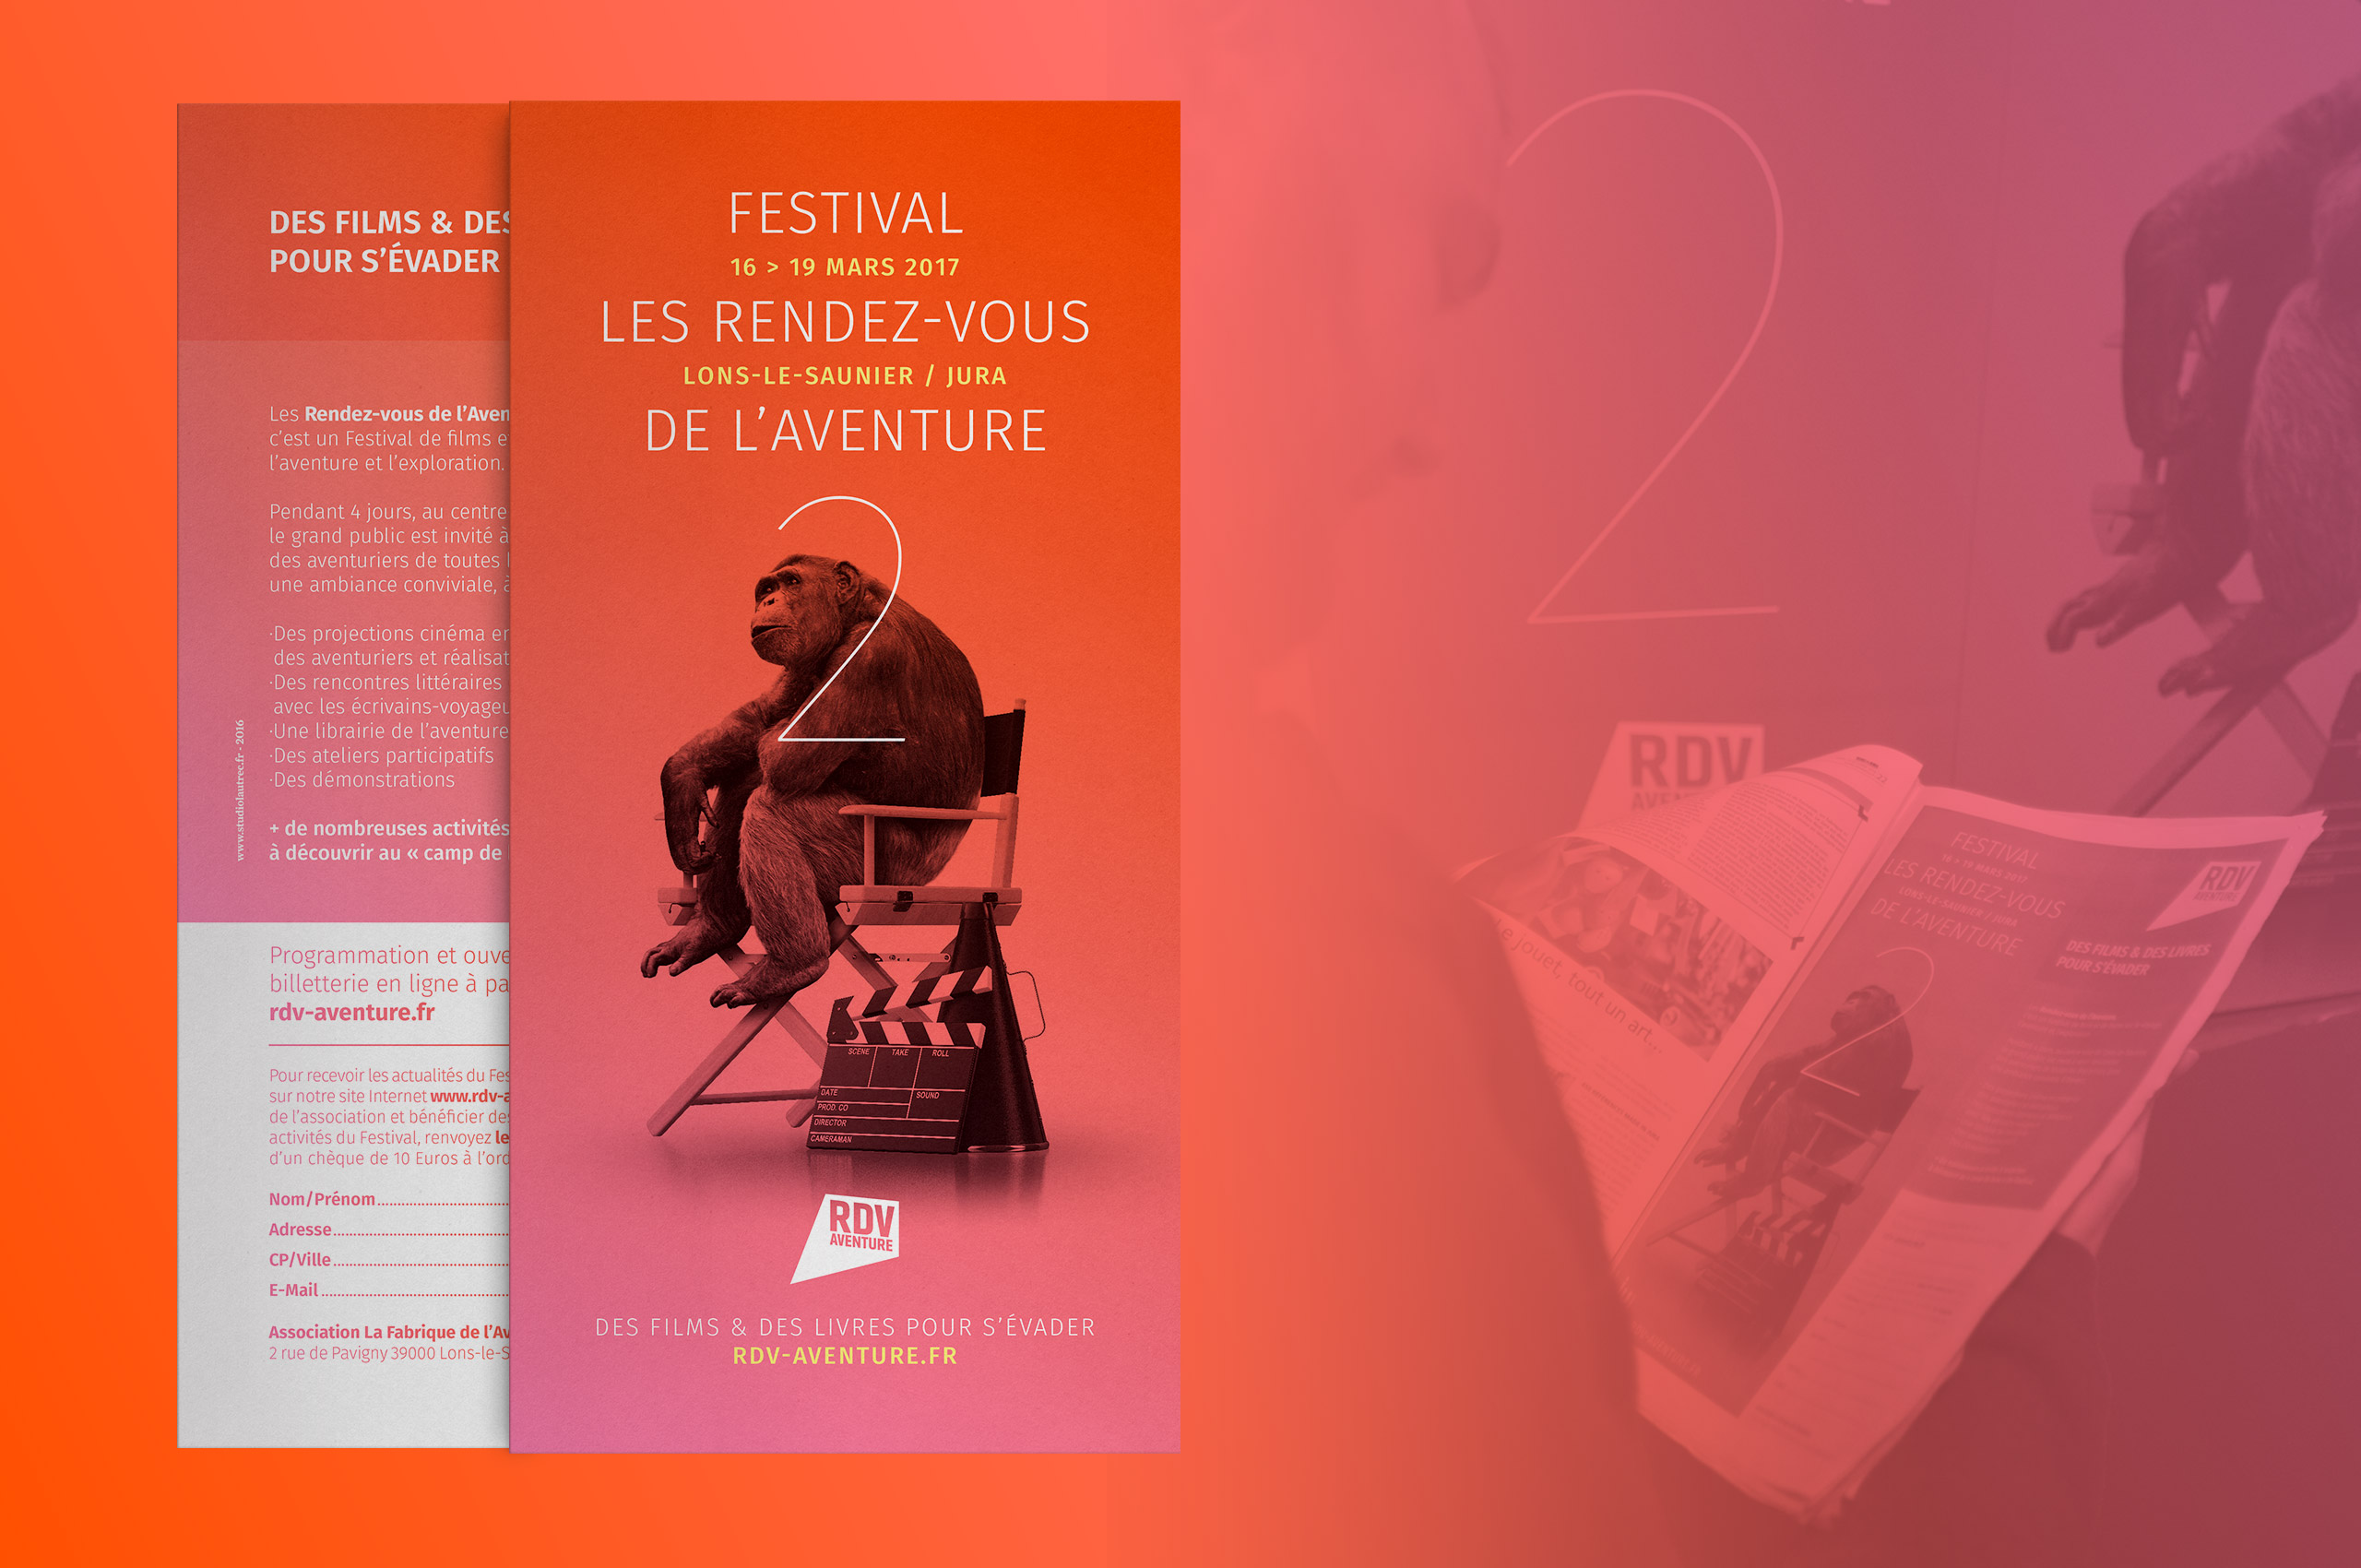 supports de promotion et de communication du festival